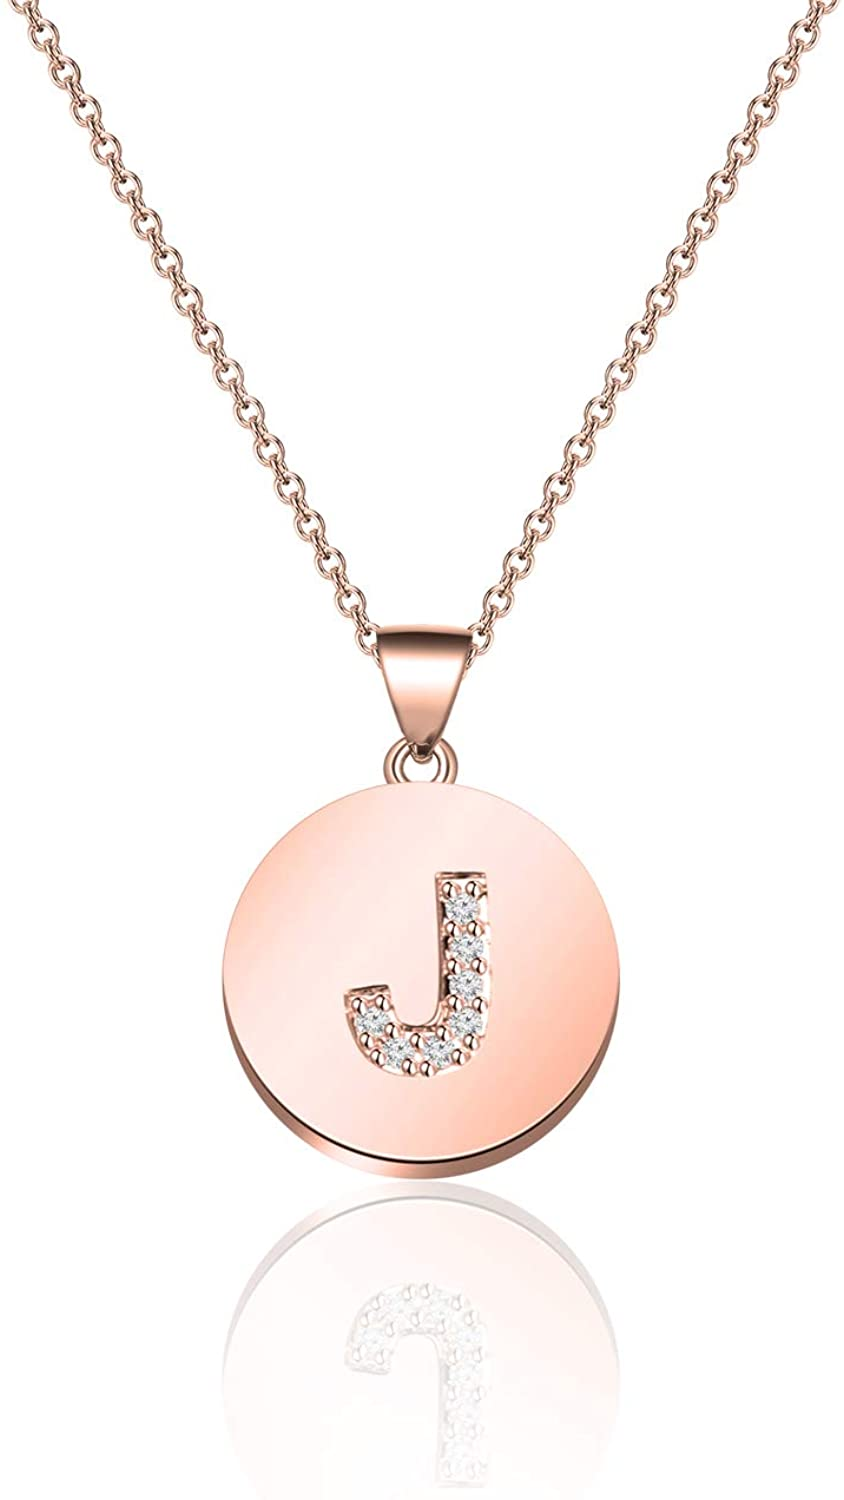 TGBJE Initial Necklace Rose Gold Letter Necklace Adjustable Necklace Gift for Women Girl